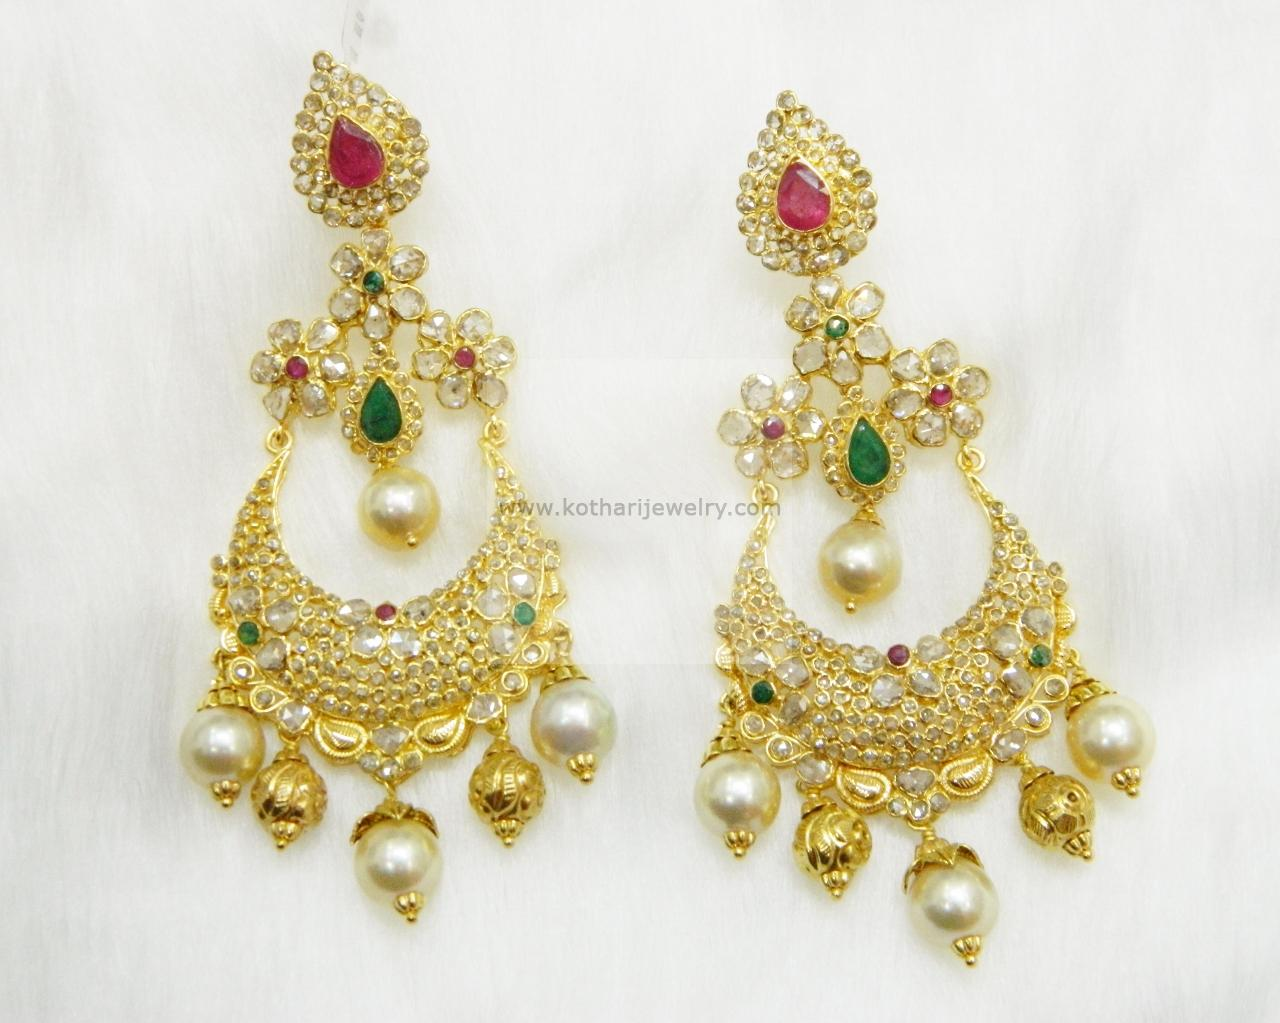 hoop jewellery store amazon buy for in at earrings plated india prices online women collection mahi dp cz stones low gold